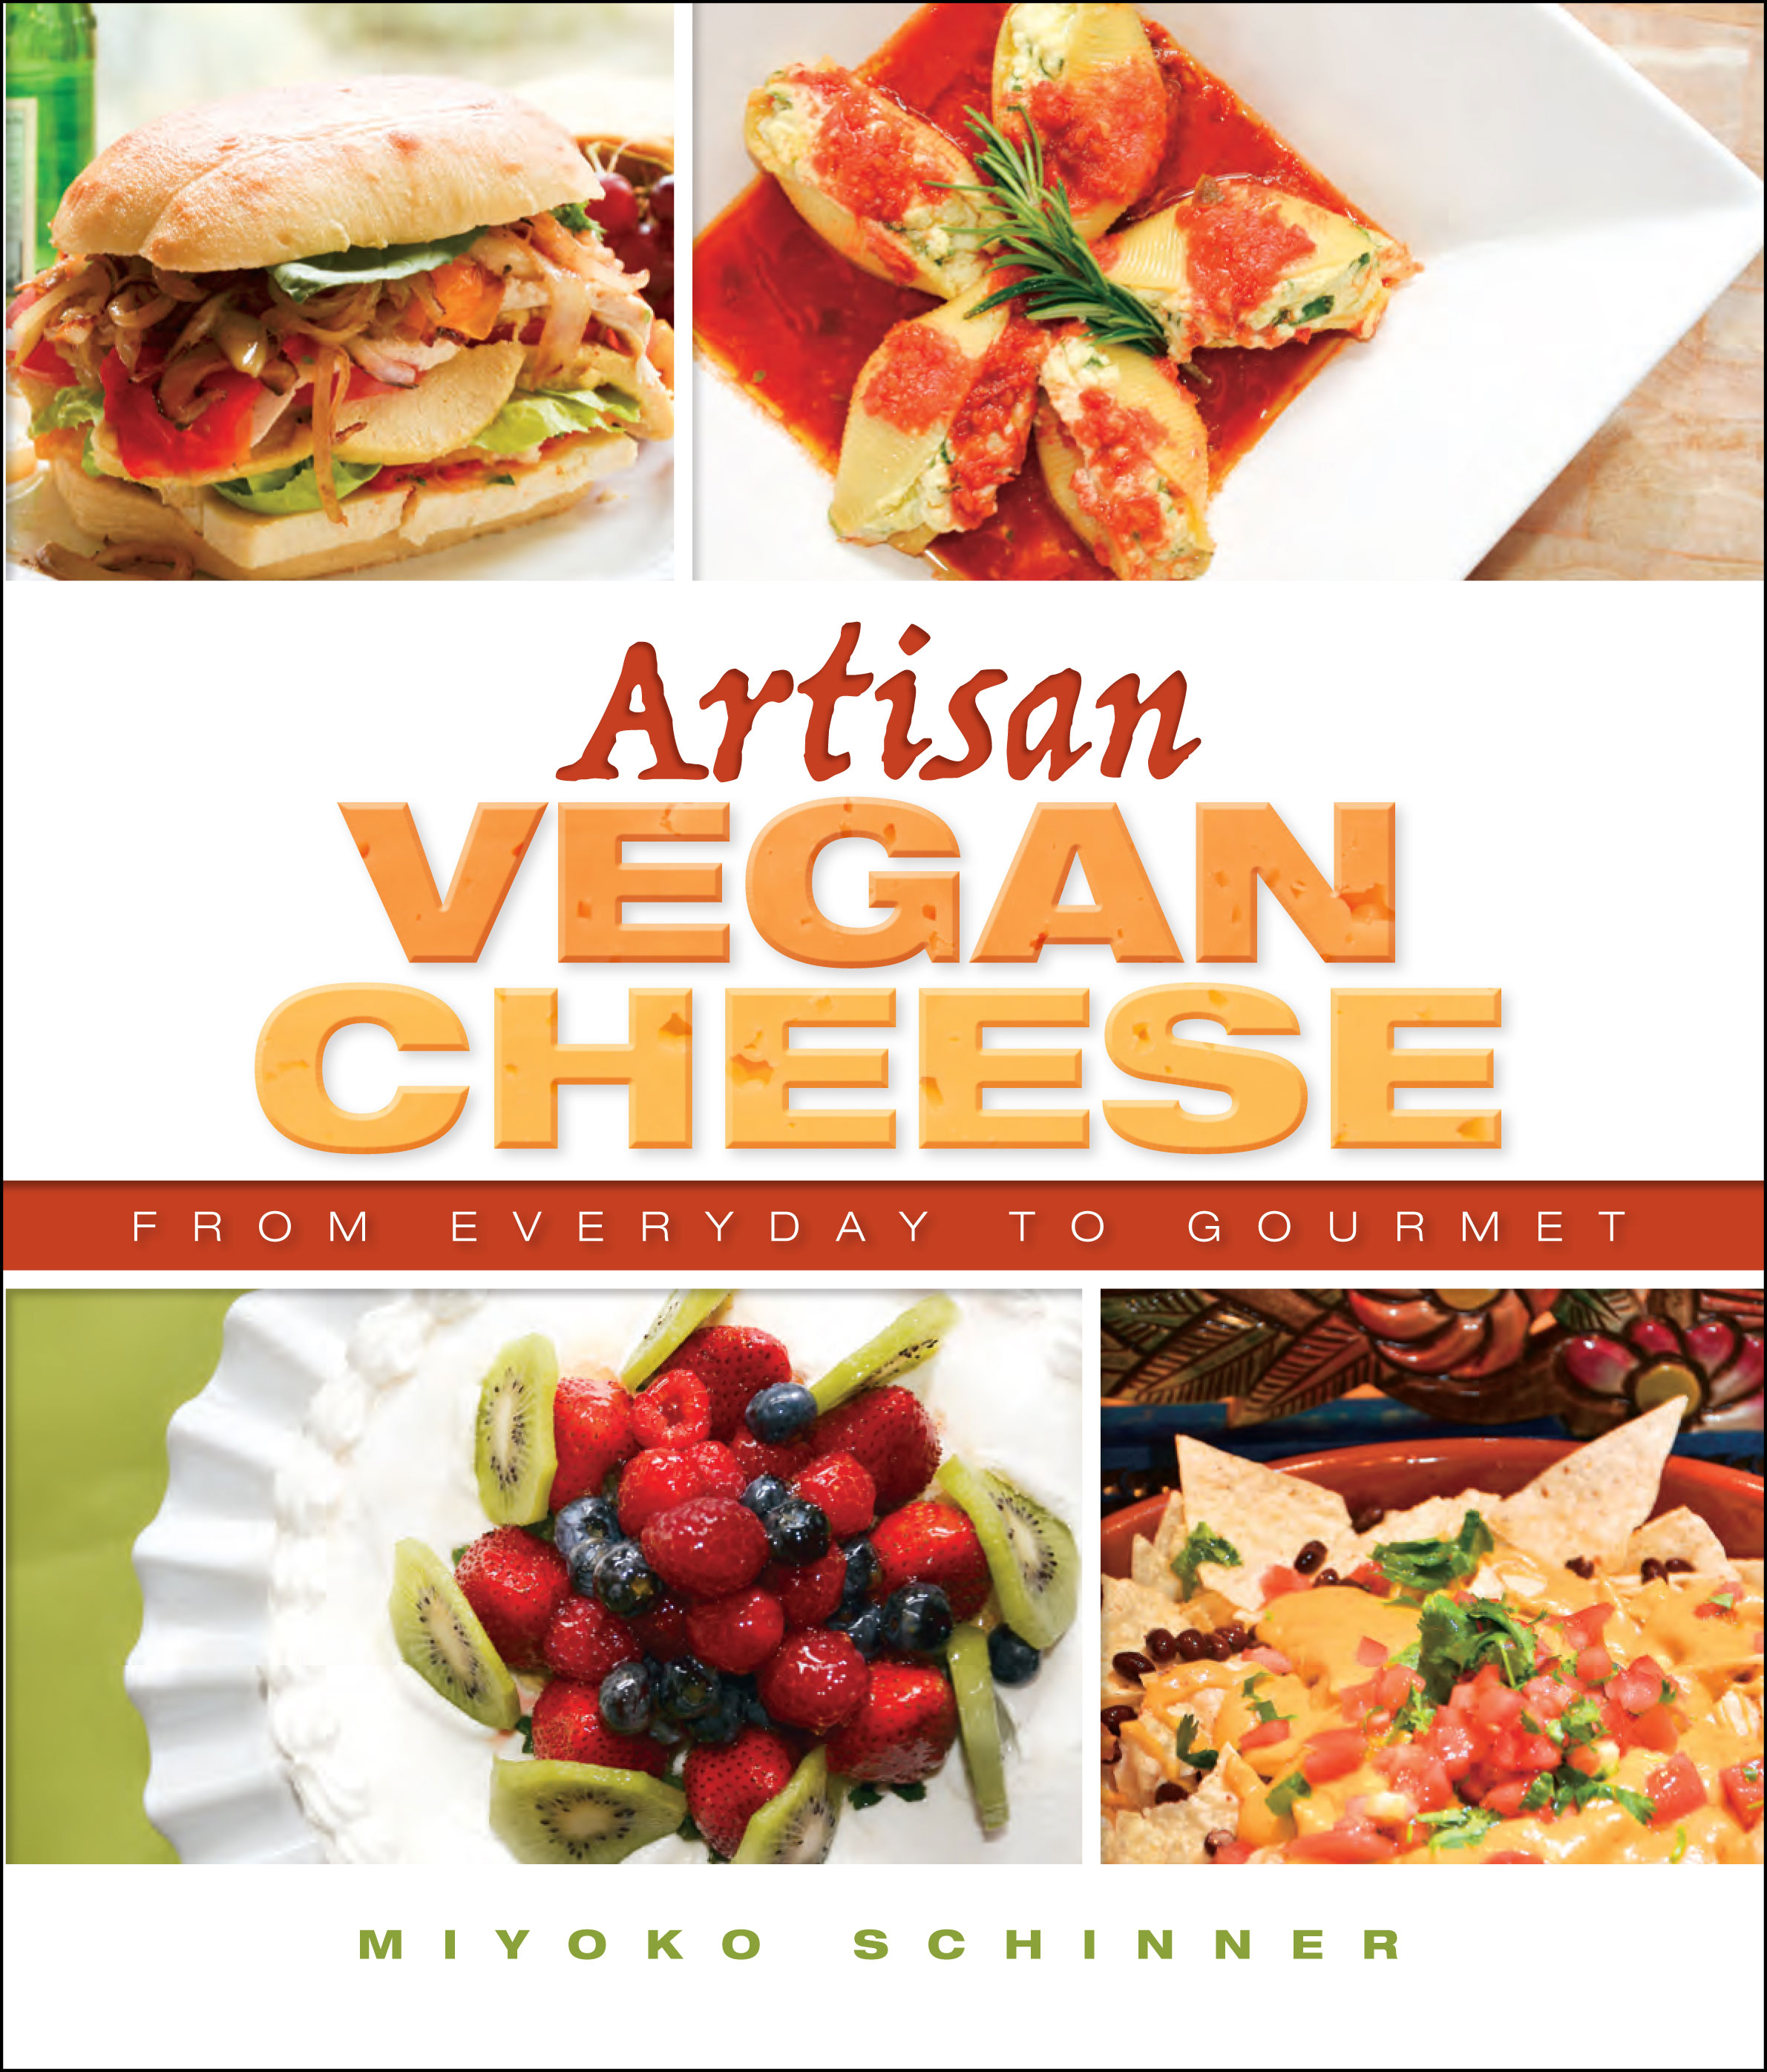 Artisan-Vegan-Cheese